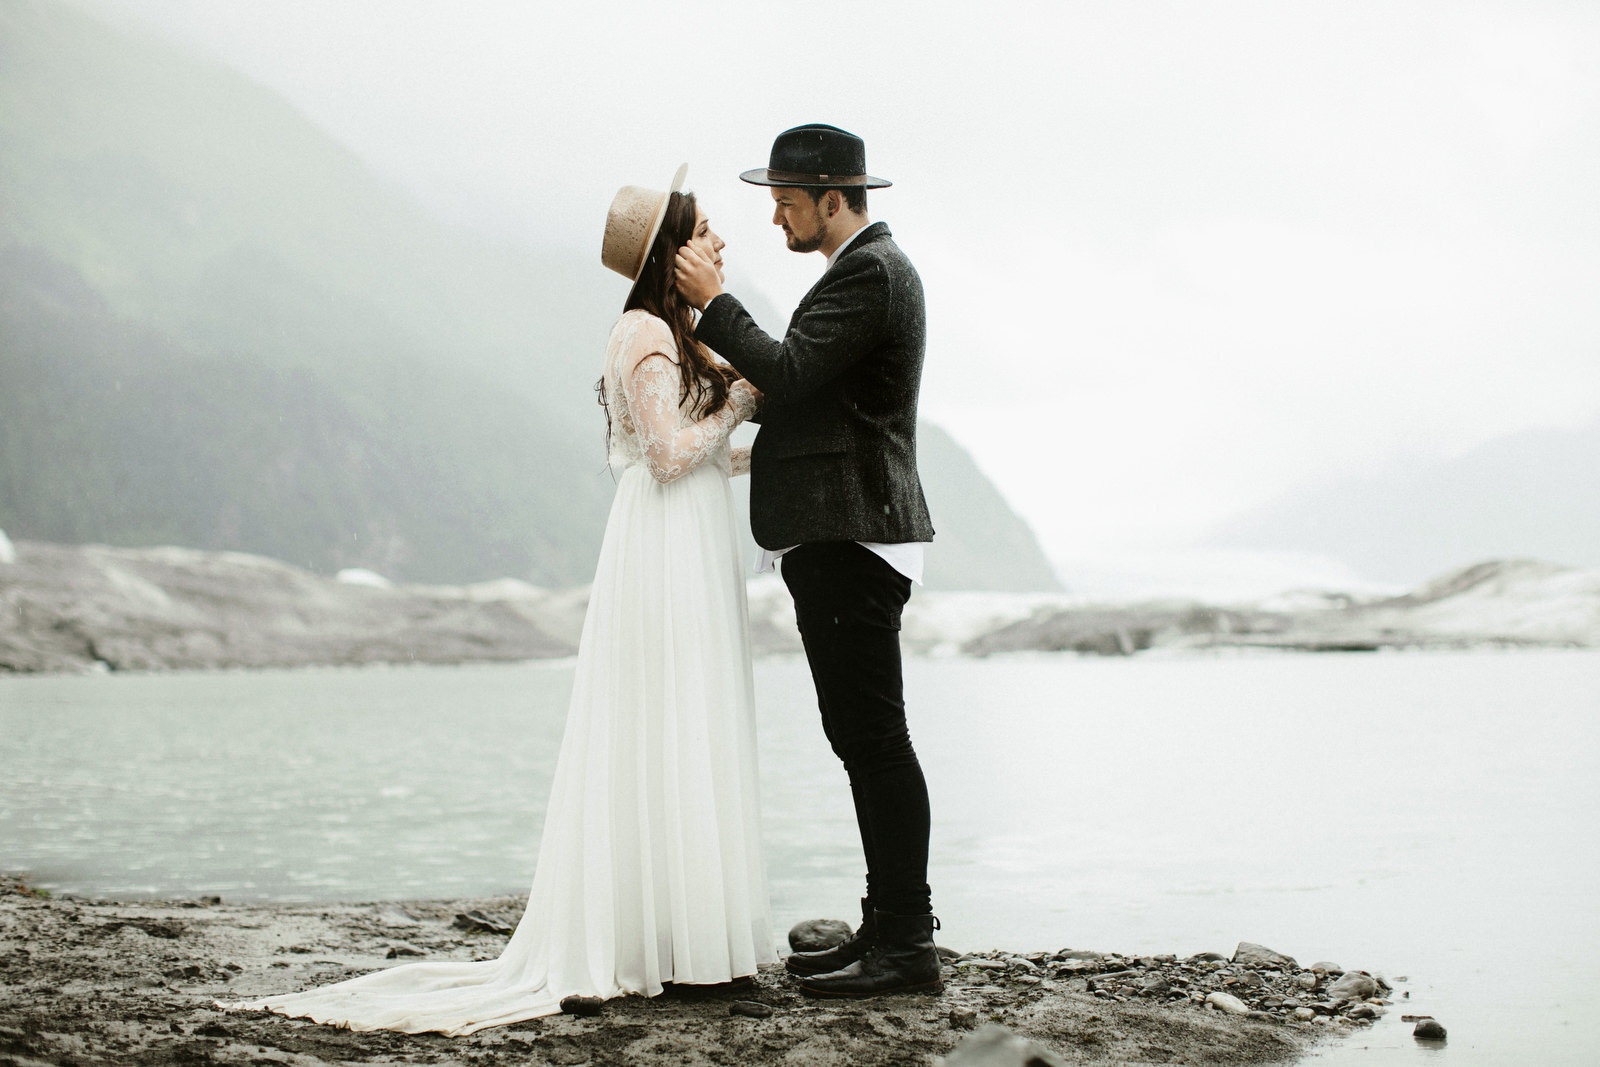 athena-and-camron-alaska-elopement-wedding-inspiration-india-earl-athena-grace-glacier-lagoon-wedding87